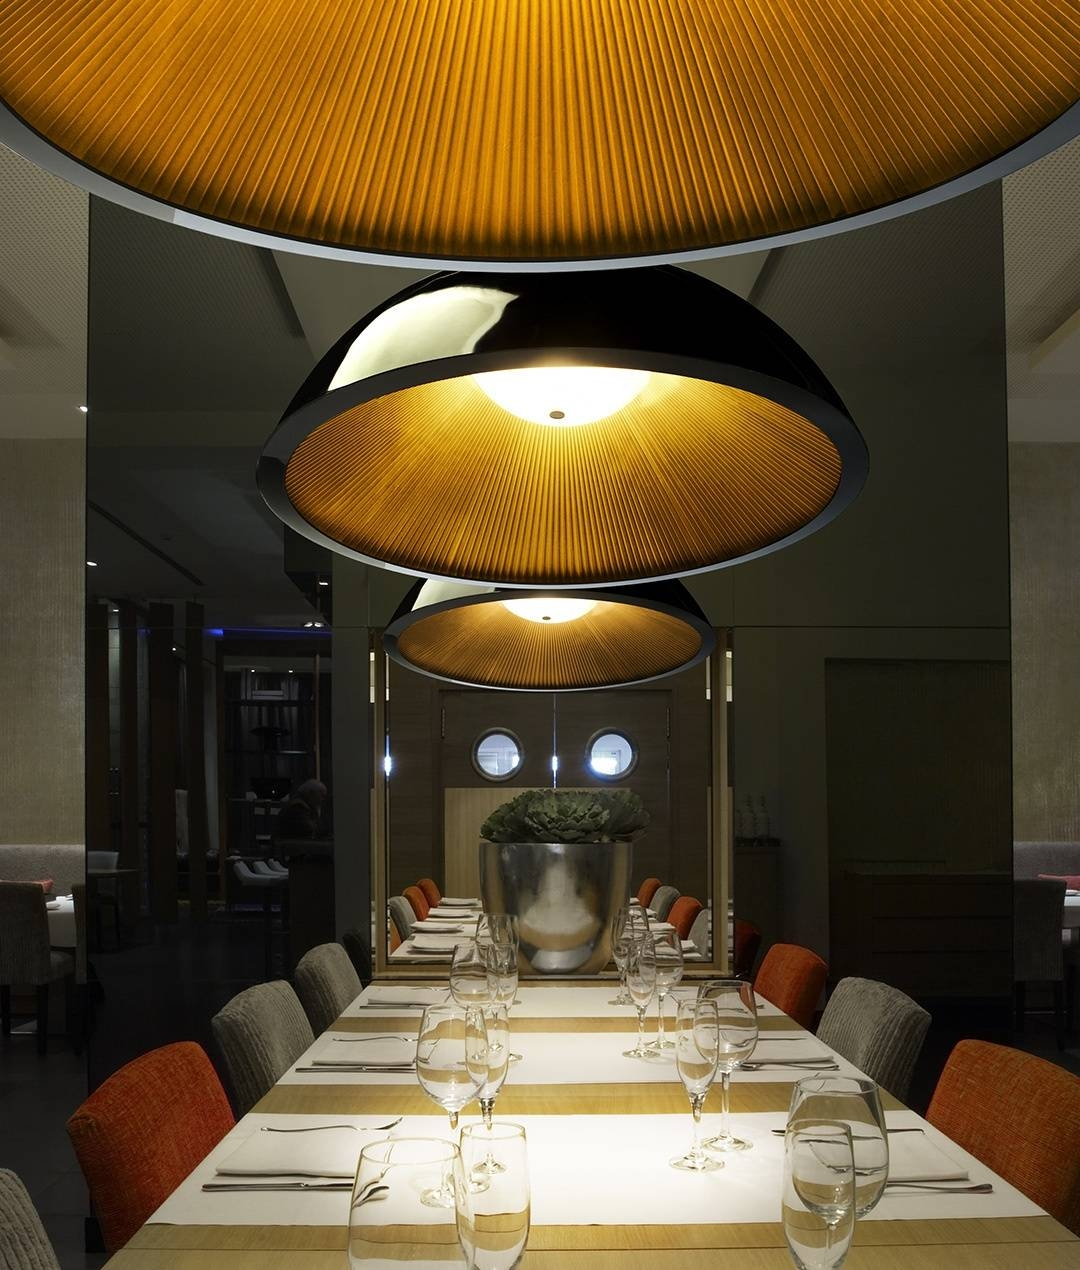 Umbrella Pendantgrok. Large Dome Light Pendant With Pleated regarding Large Dome Pendant Lights (Image 15 of 15)